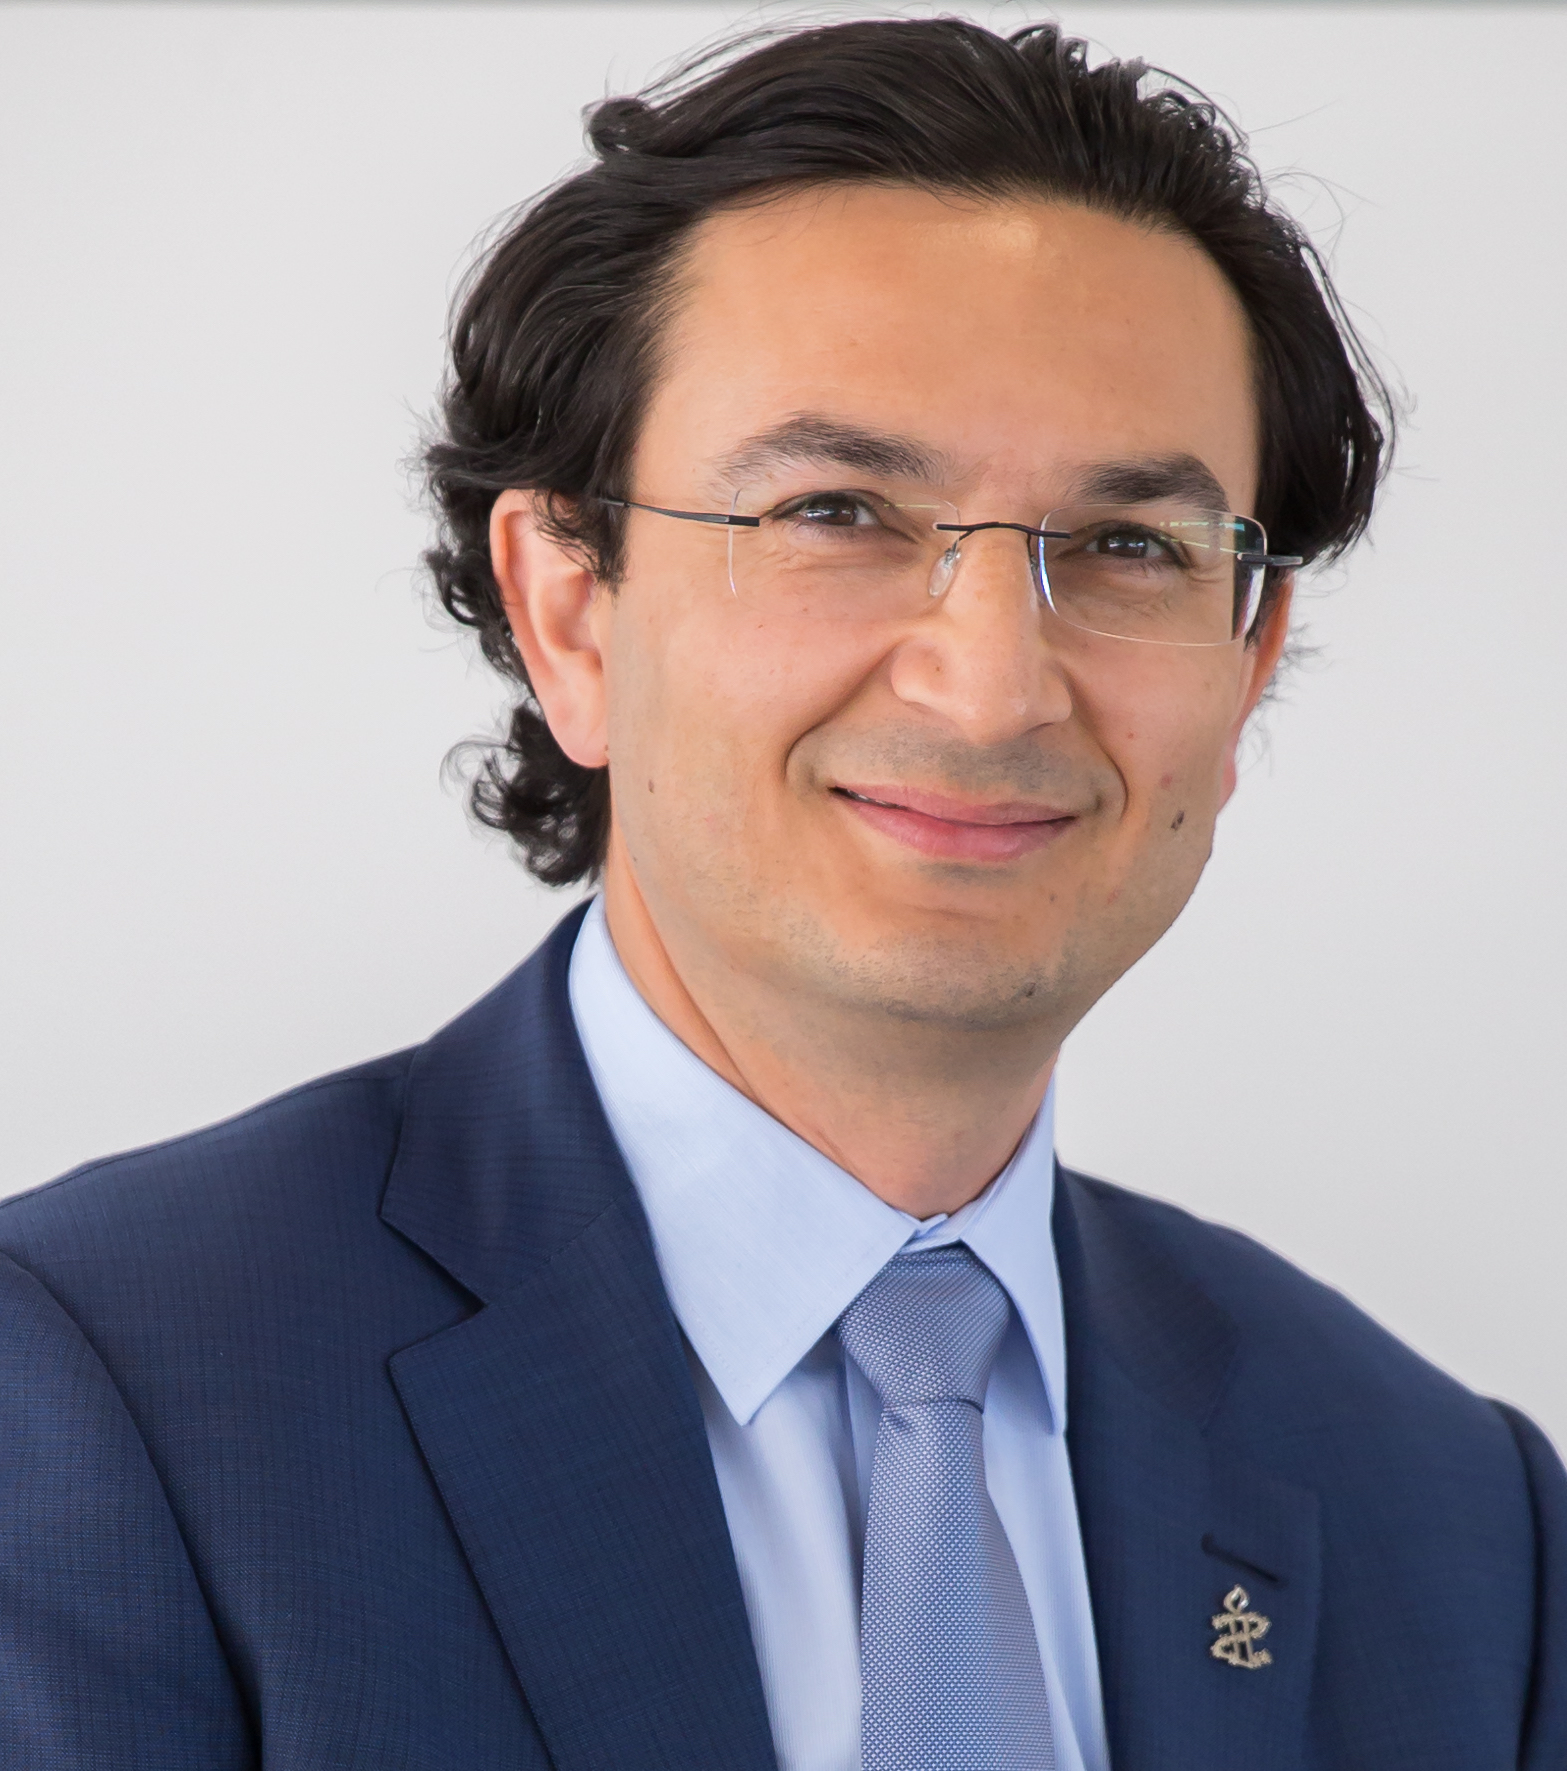 Photo of Munjed Al Muderis